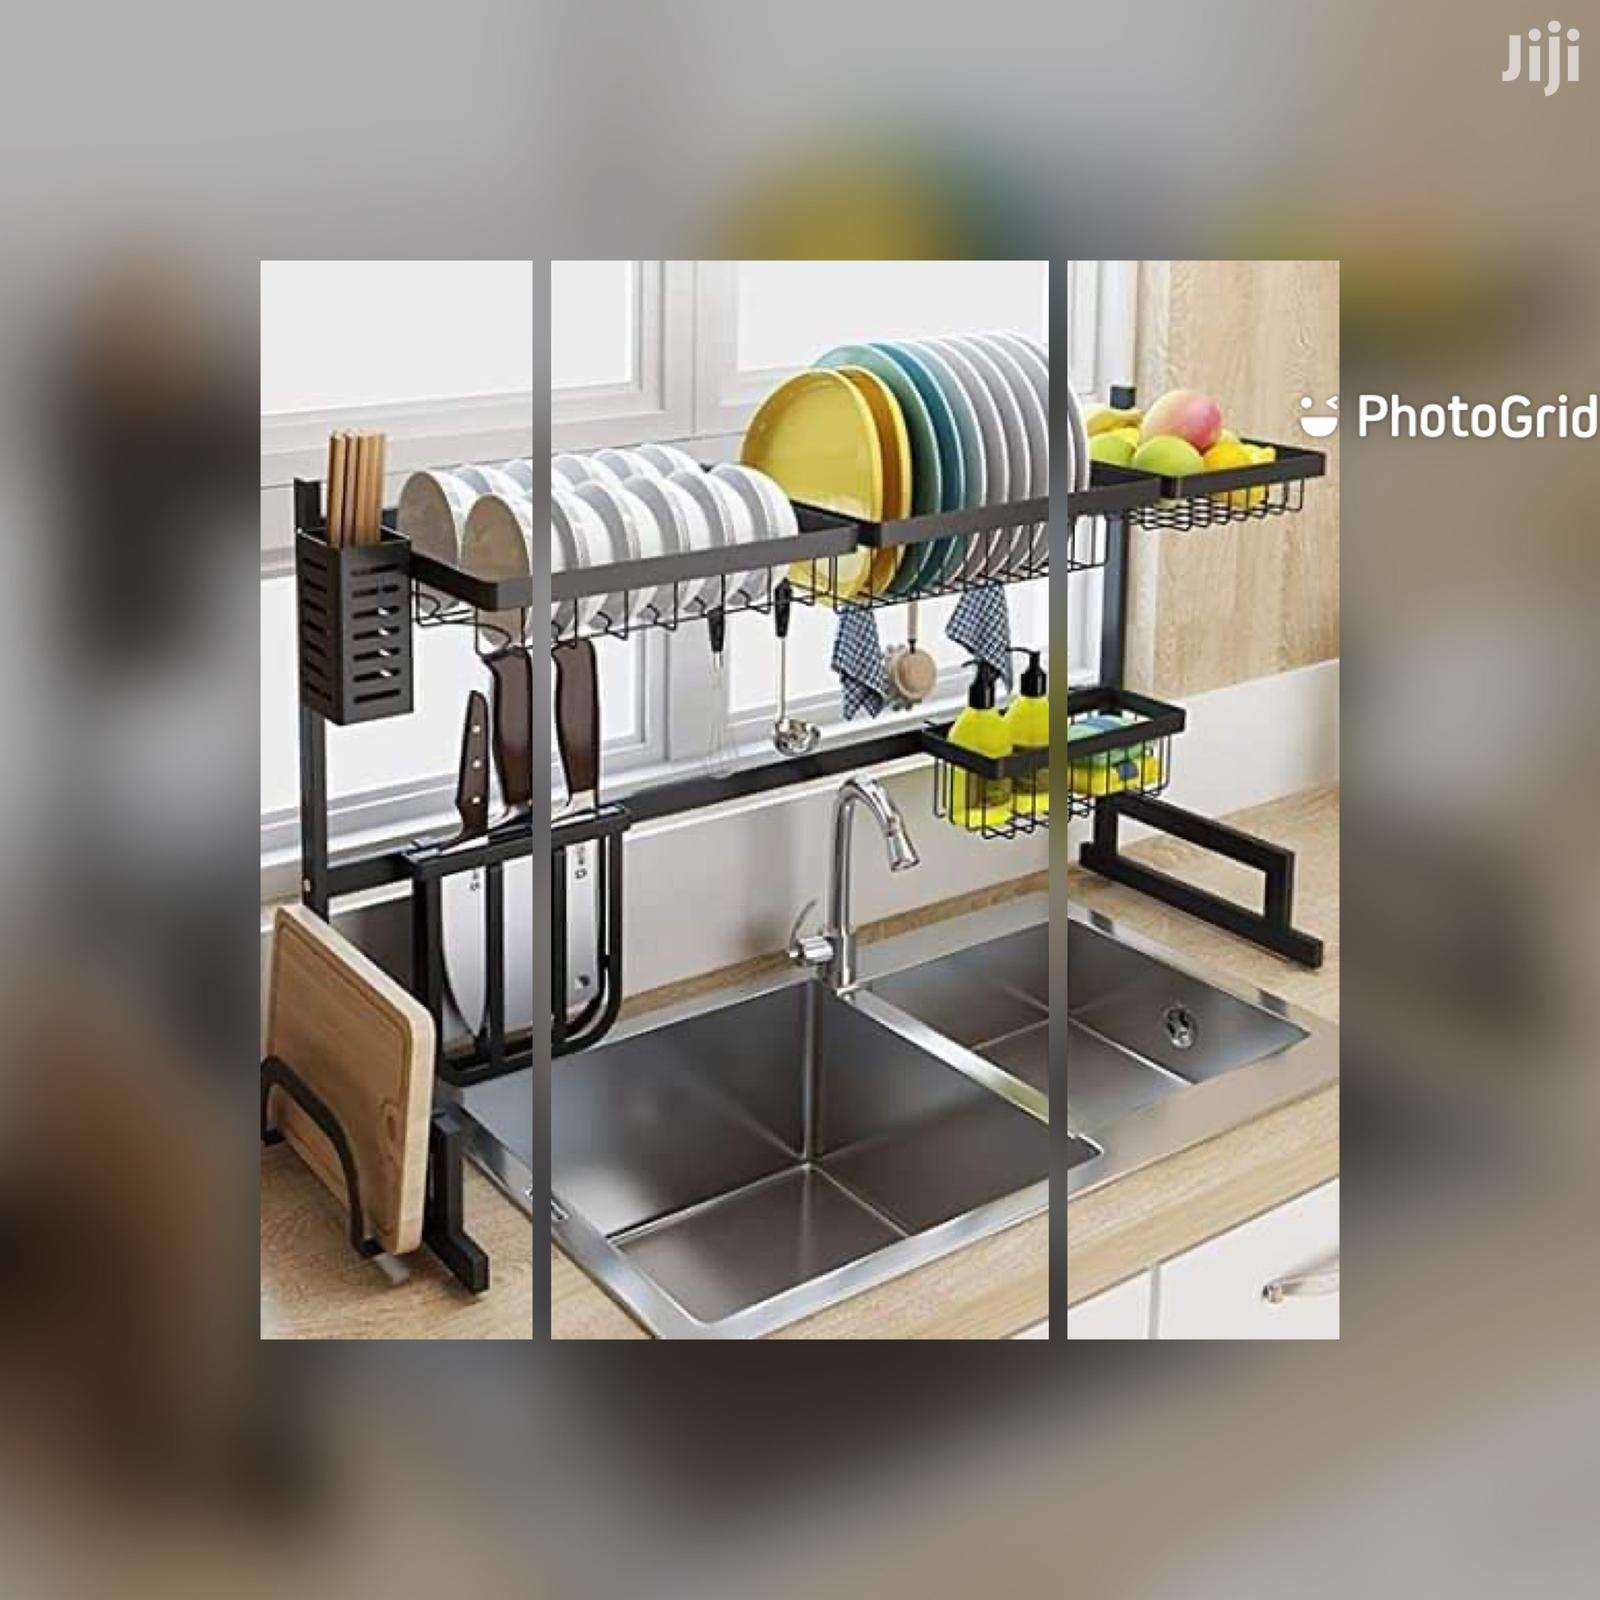 *Over The Sink Dish Drying Rack